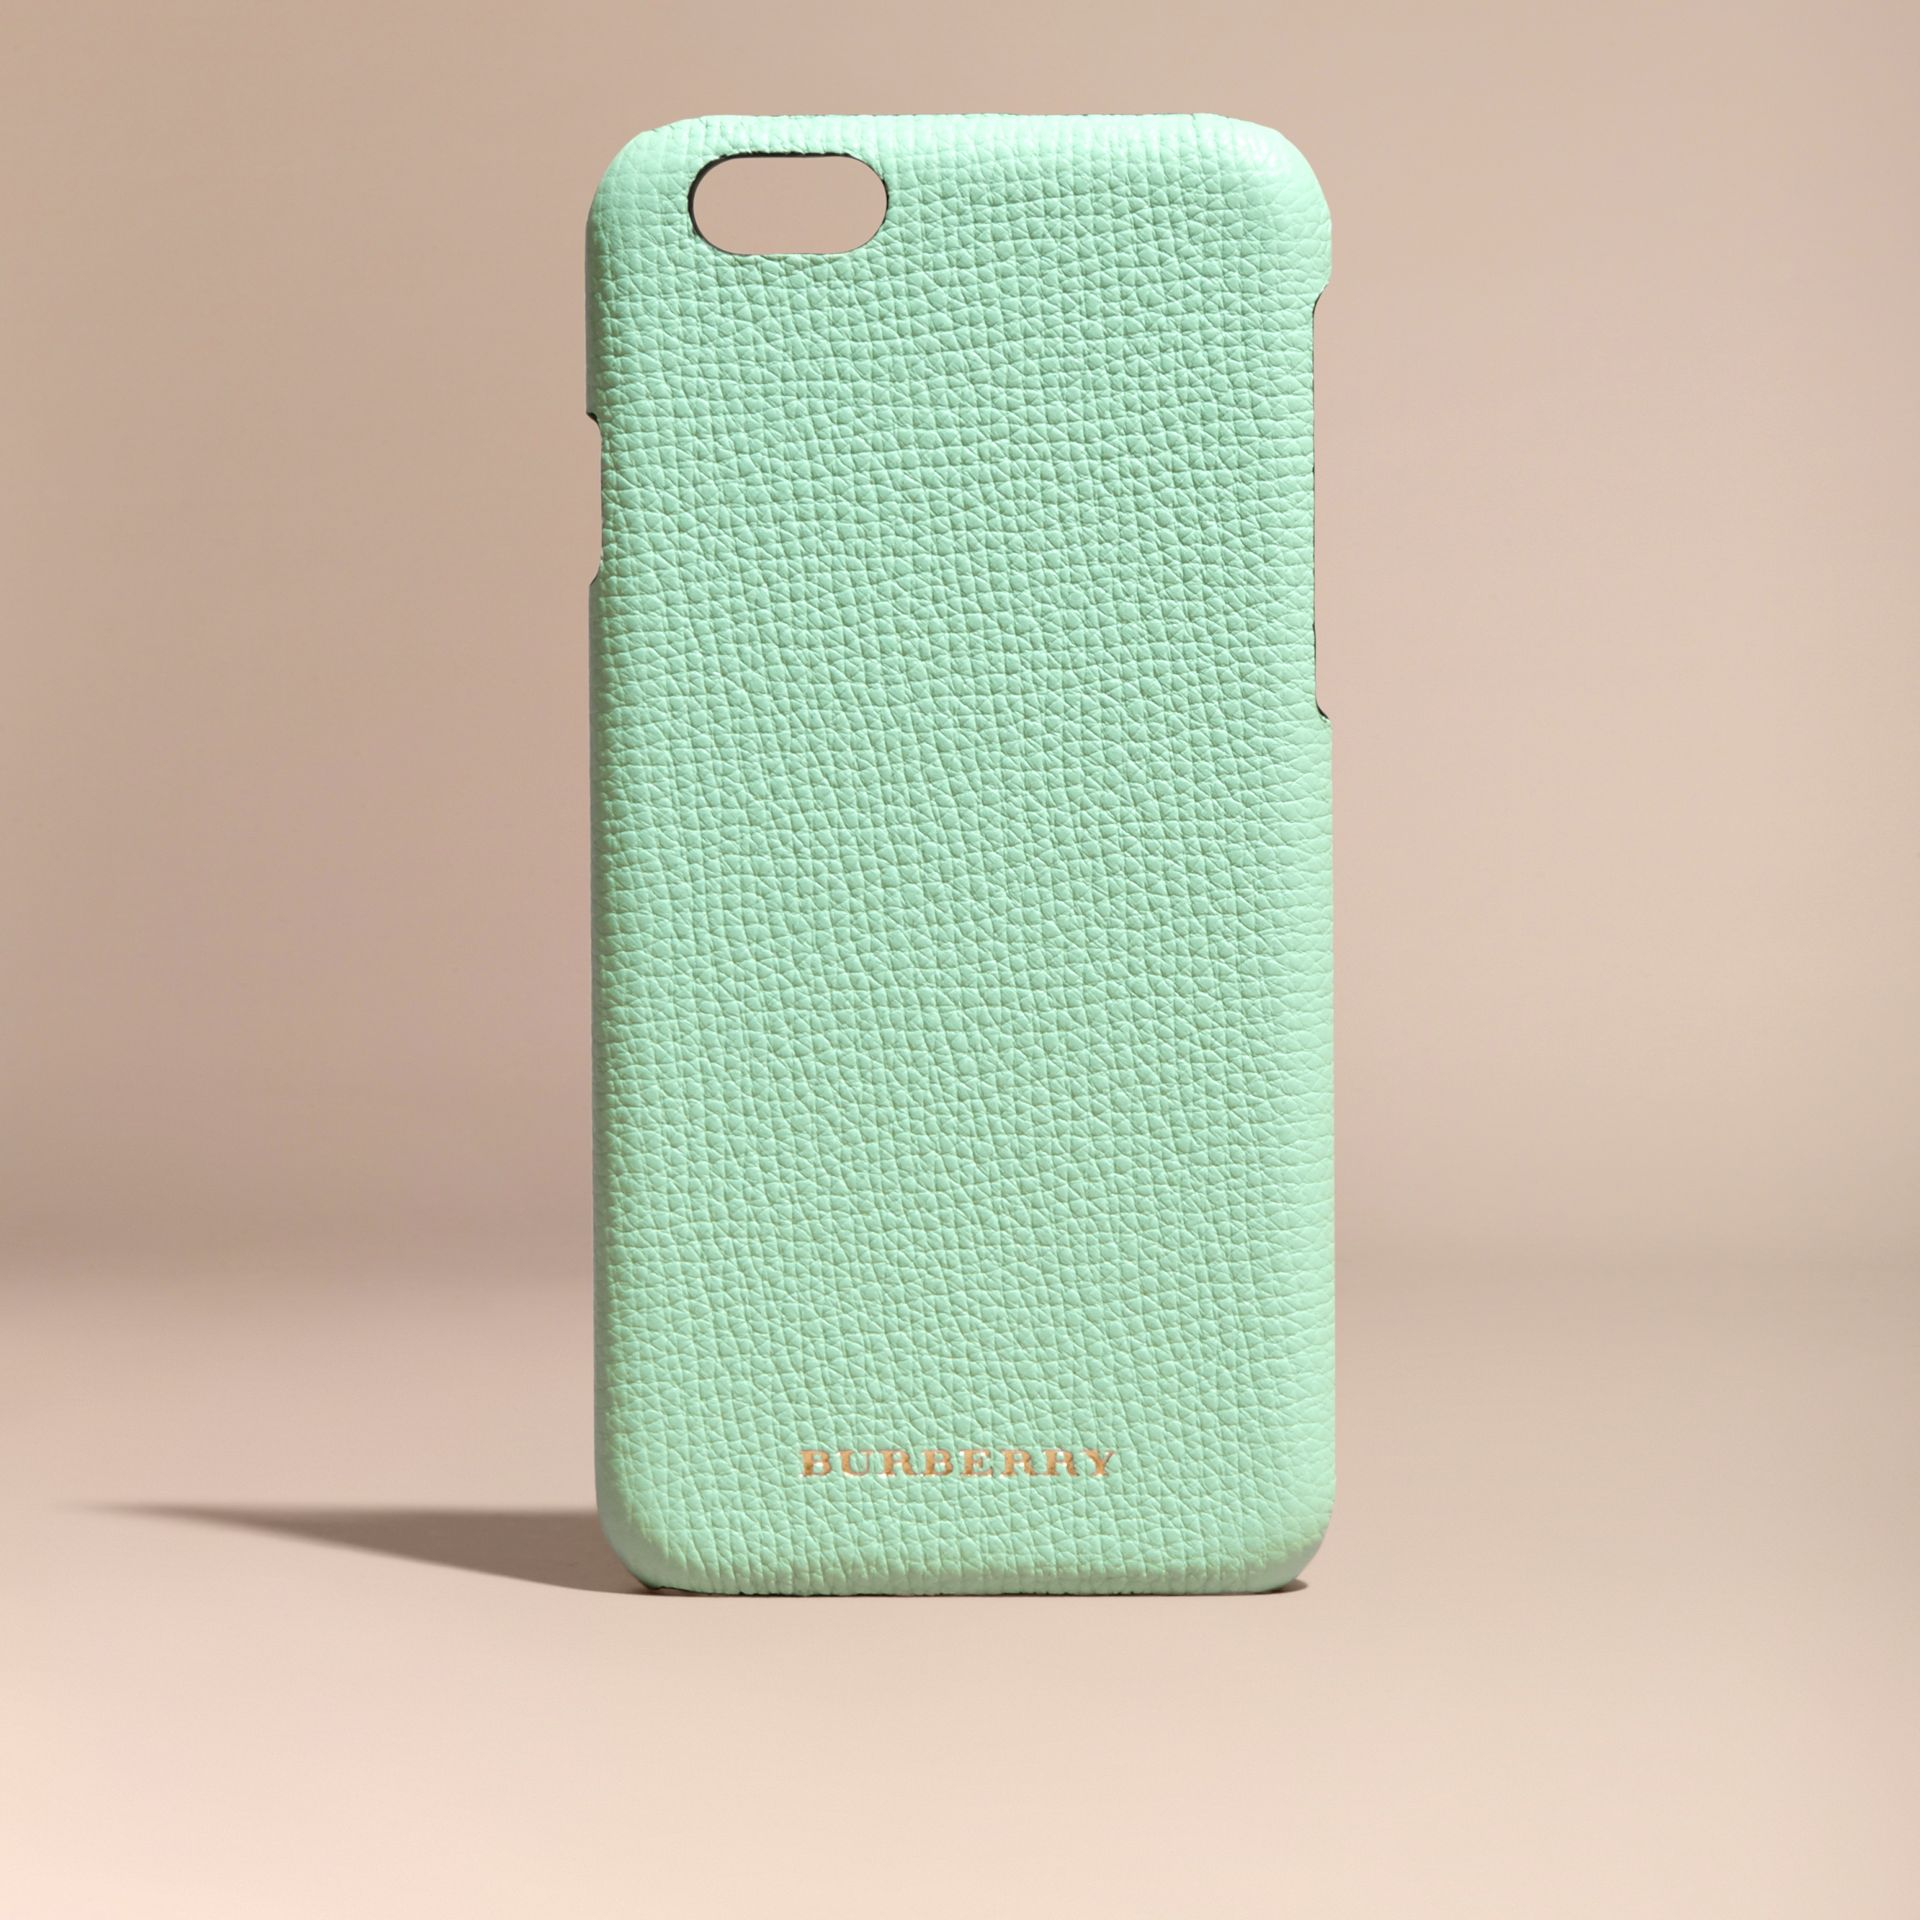 Grainy Leather iPhone 6 Case in Light Mint - Women | Burberry Hong Kong - gallery image 5